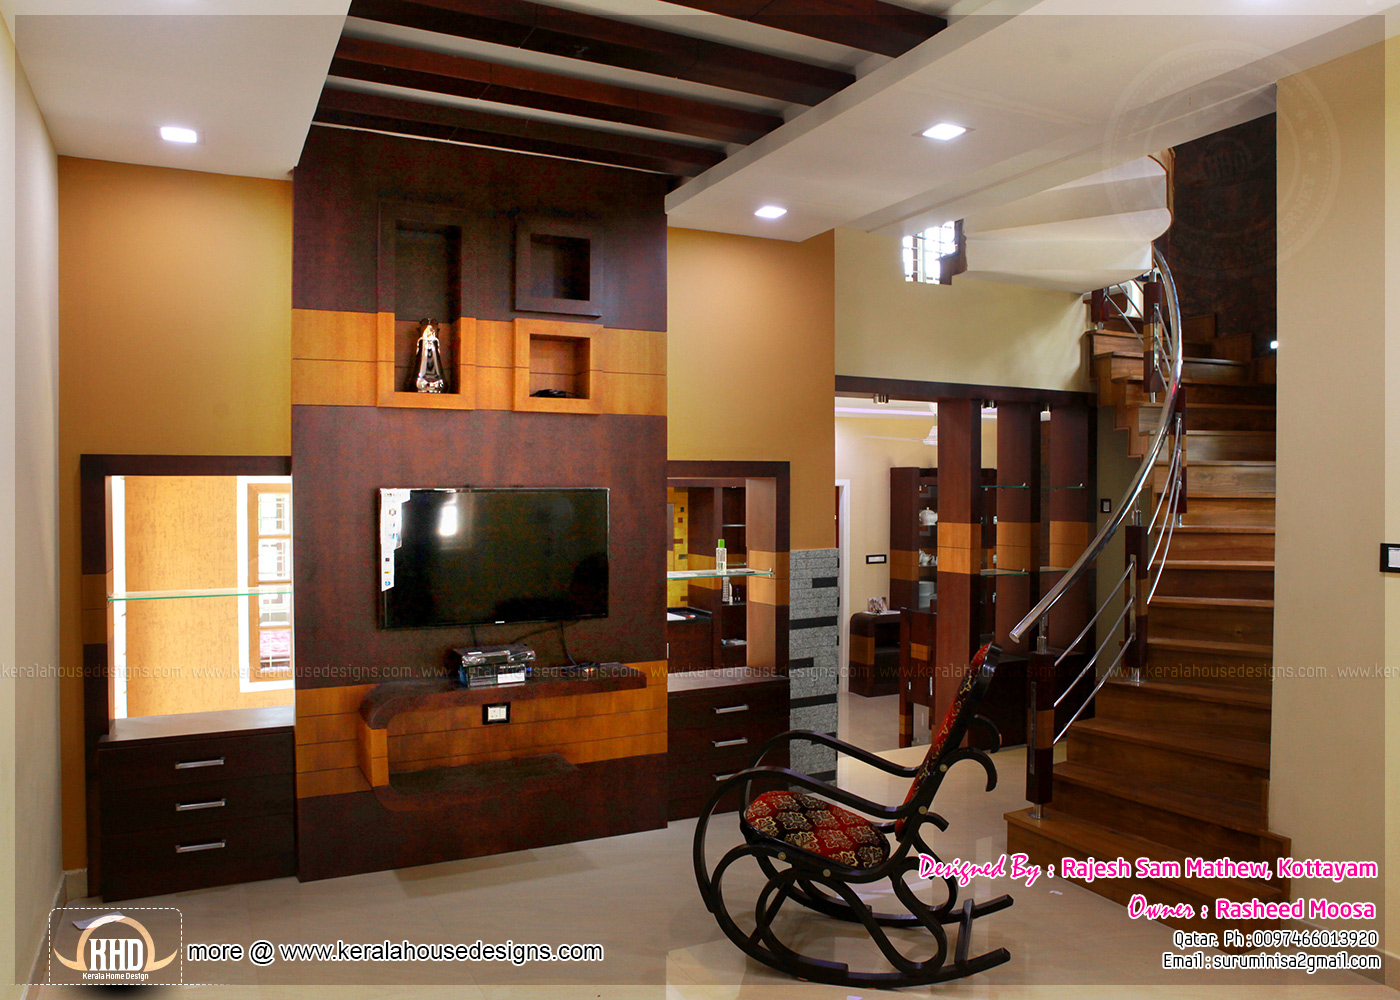 Interior House Designs In Kerala kerala interior design with photos - kerala home design and floor